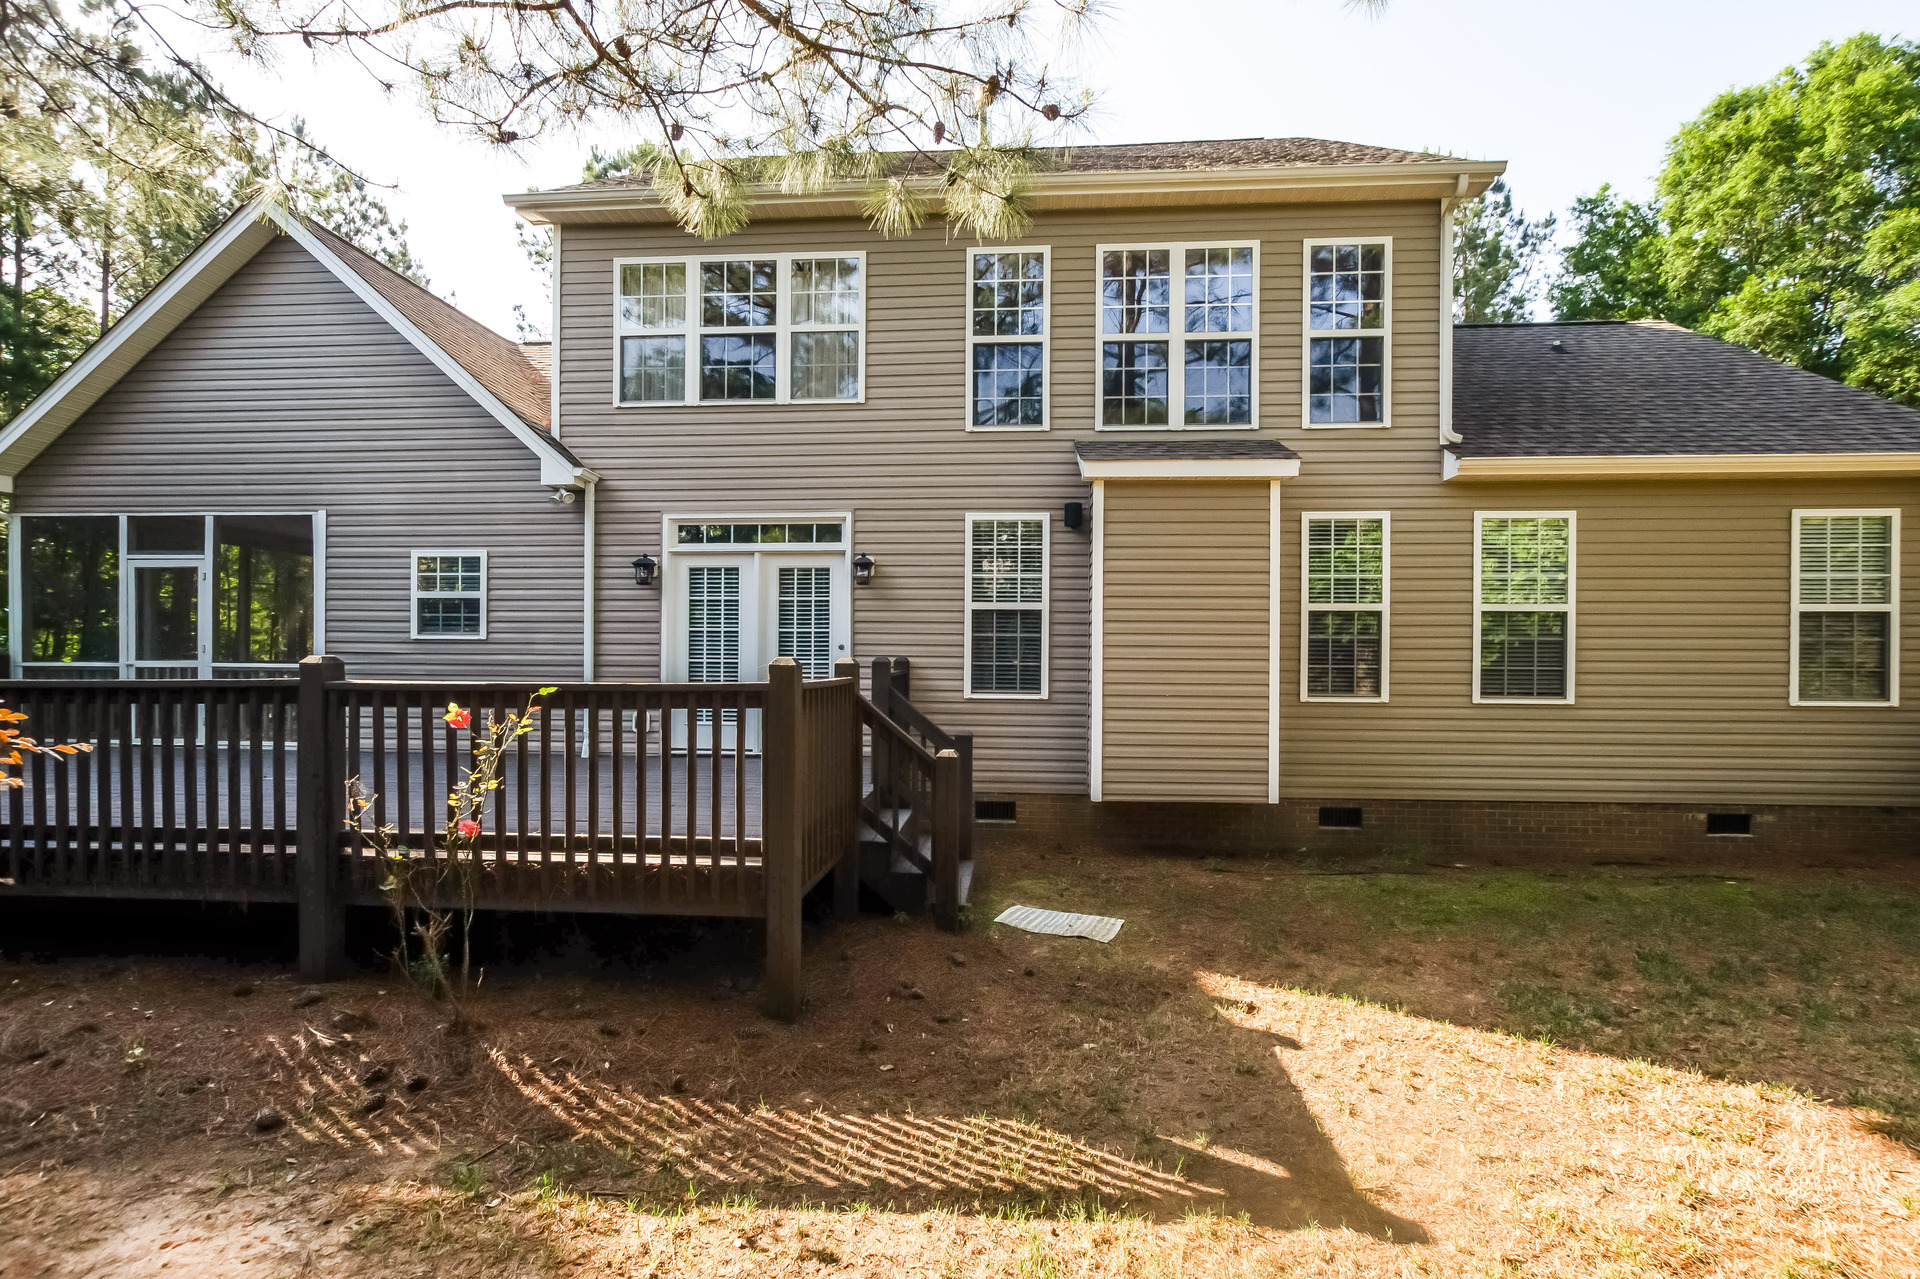 Photo of 2012 Chameleon Rd, York, SC, 29745